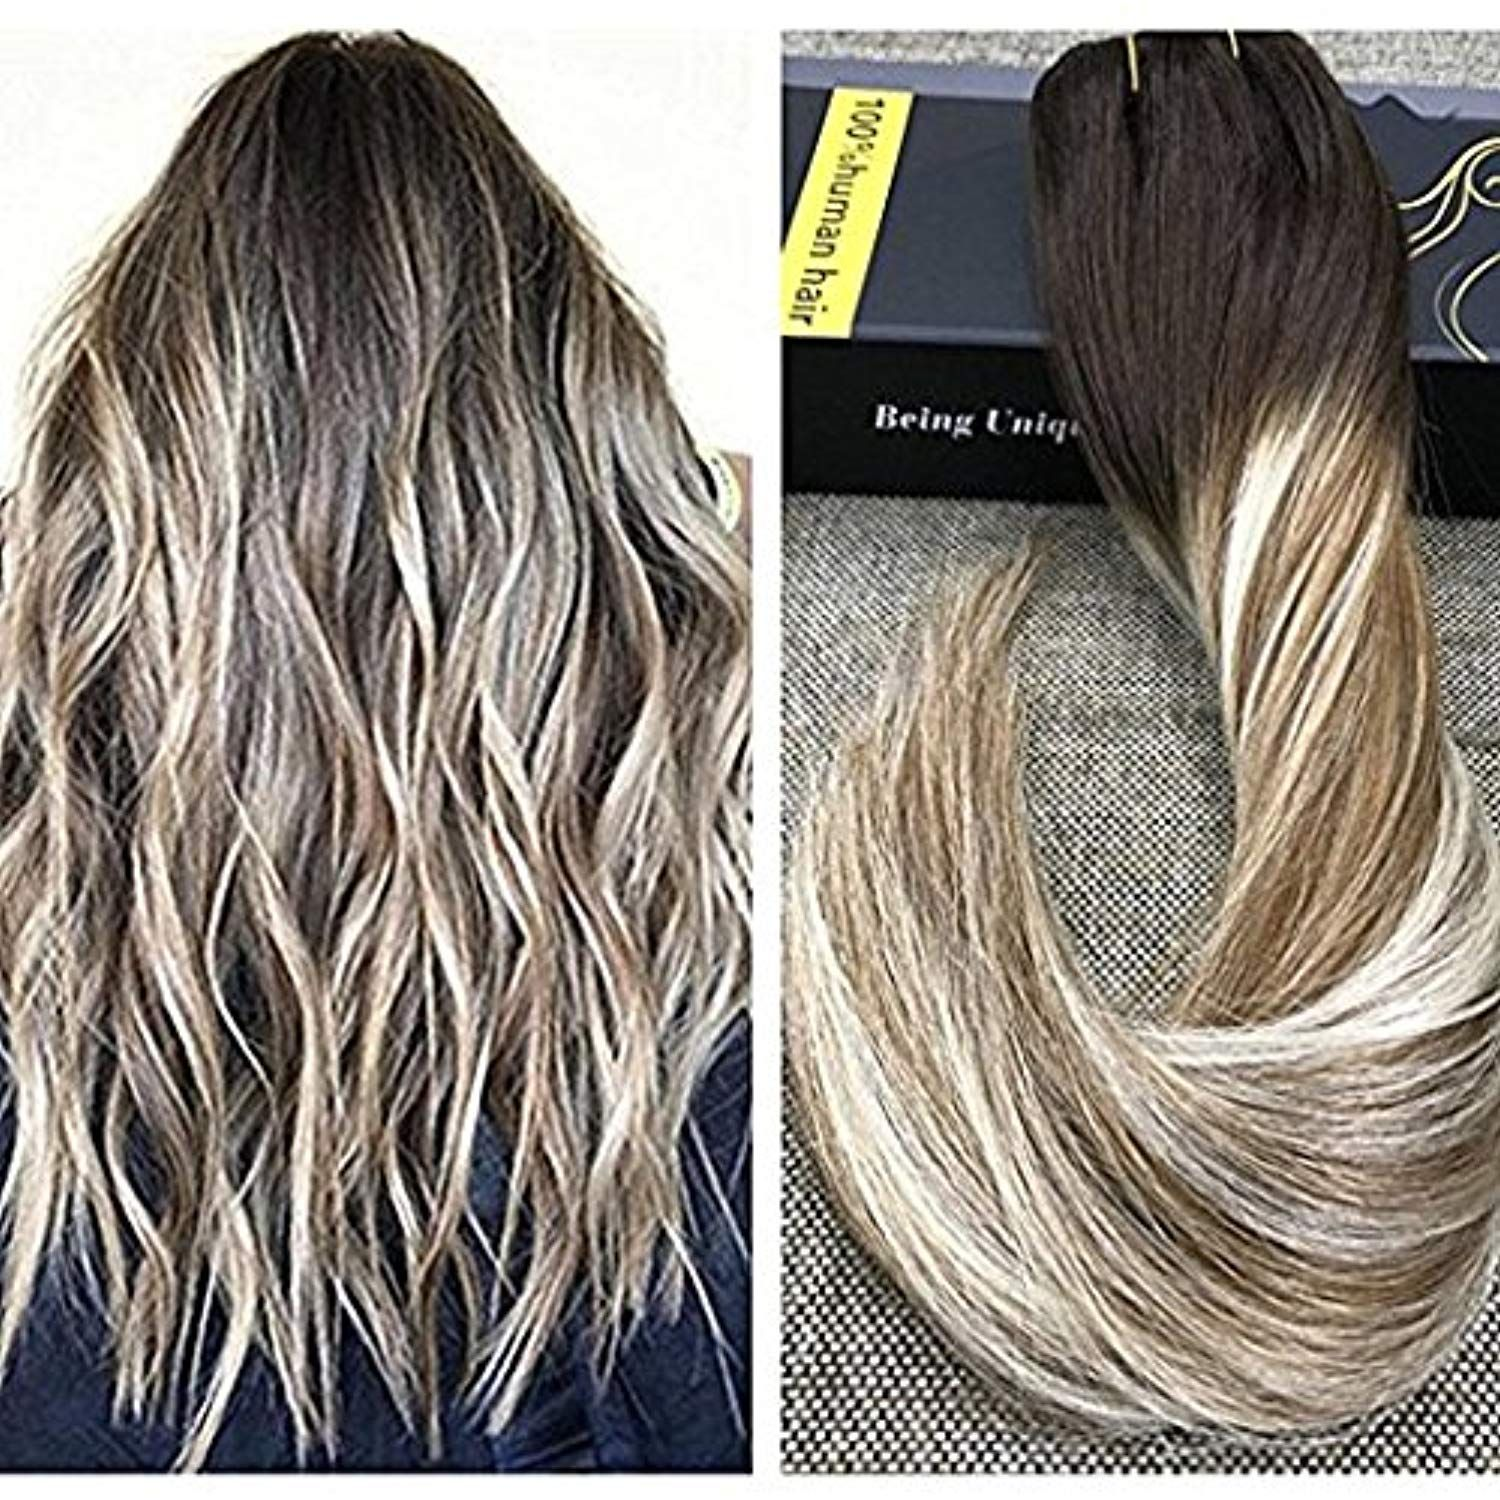 Ugeat 18inch Salon Quality Silky Straight Clip In Human Hair Extensions Balayage Color 2 Fading Human Hair Extensions Brown Ombre Hair Color Brown Ombre Hair